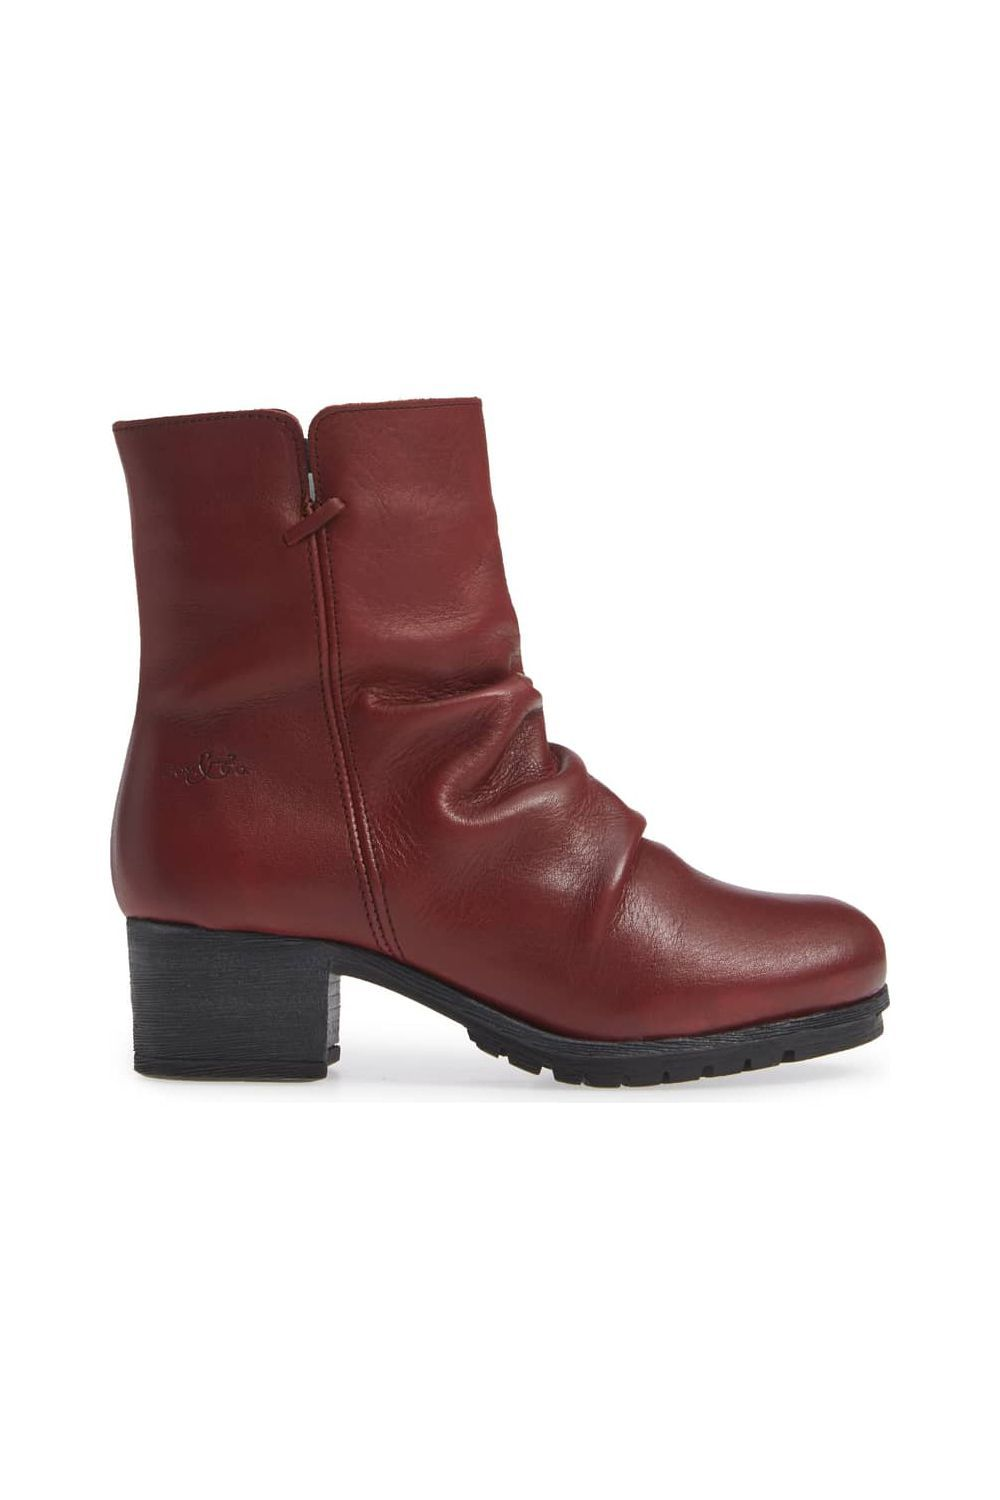 51944d3f1ec Madrid Waterproof Insulated Bootie